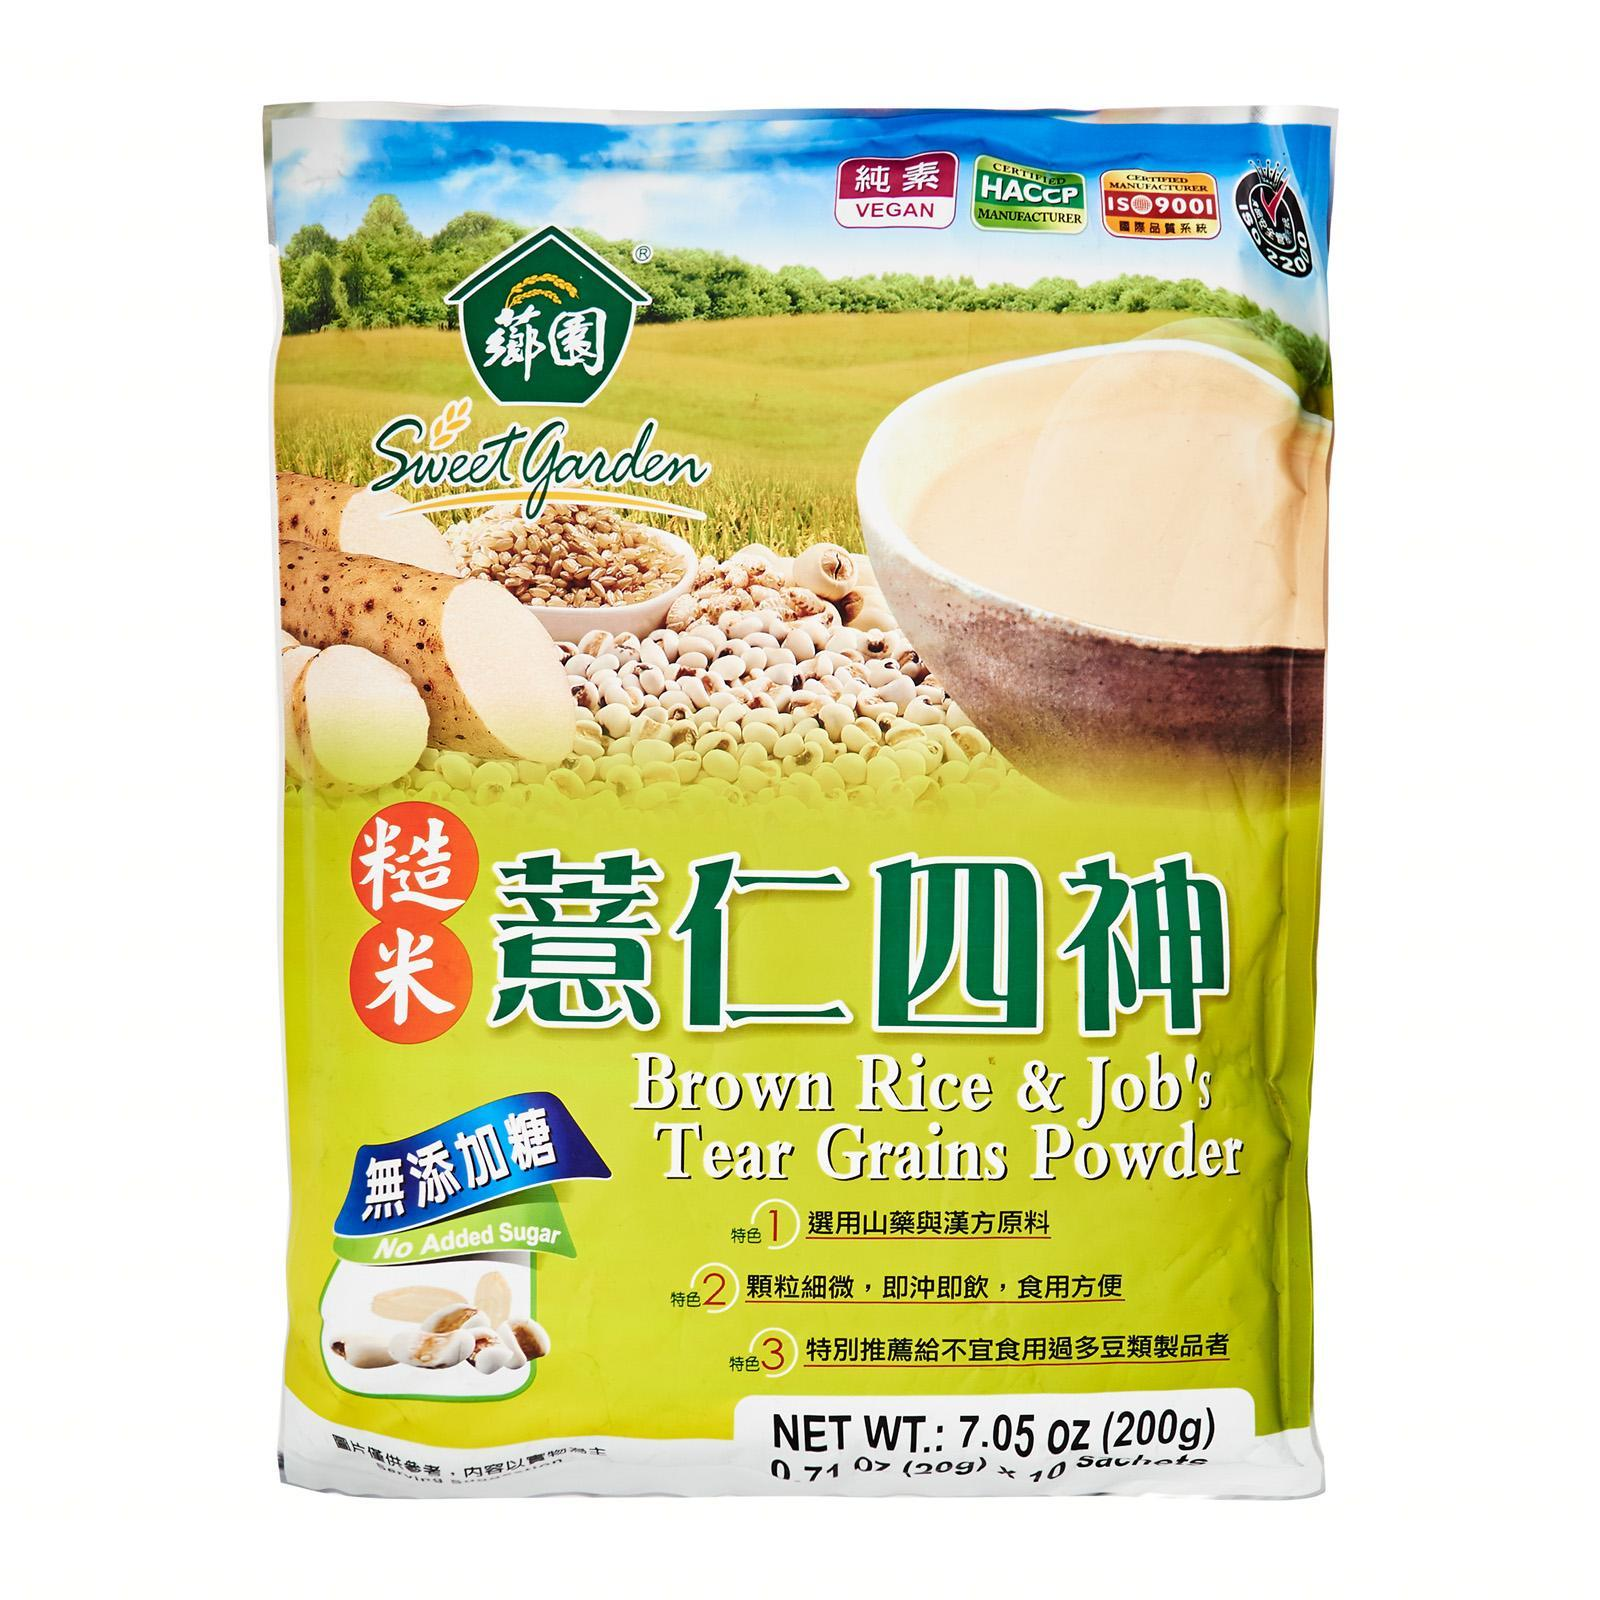 SWEET GARDEN Brown Rice And Job's Tear Grains Instant Powder